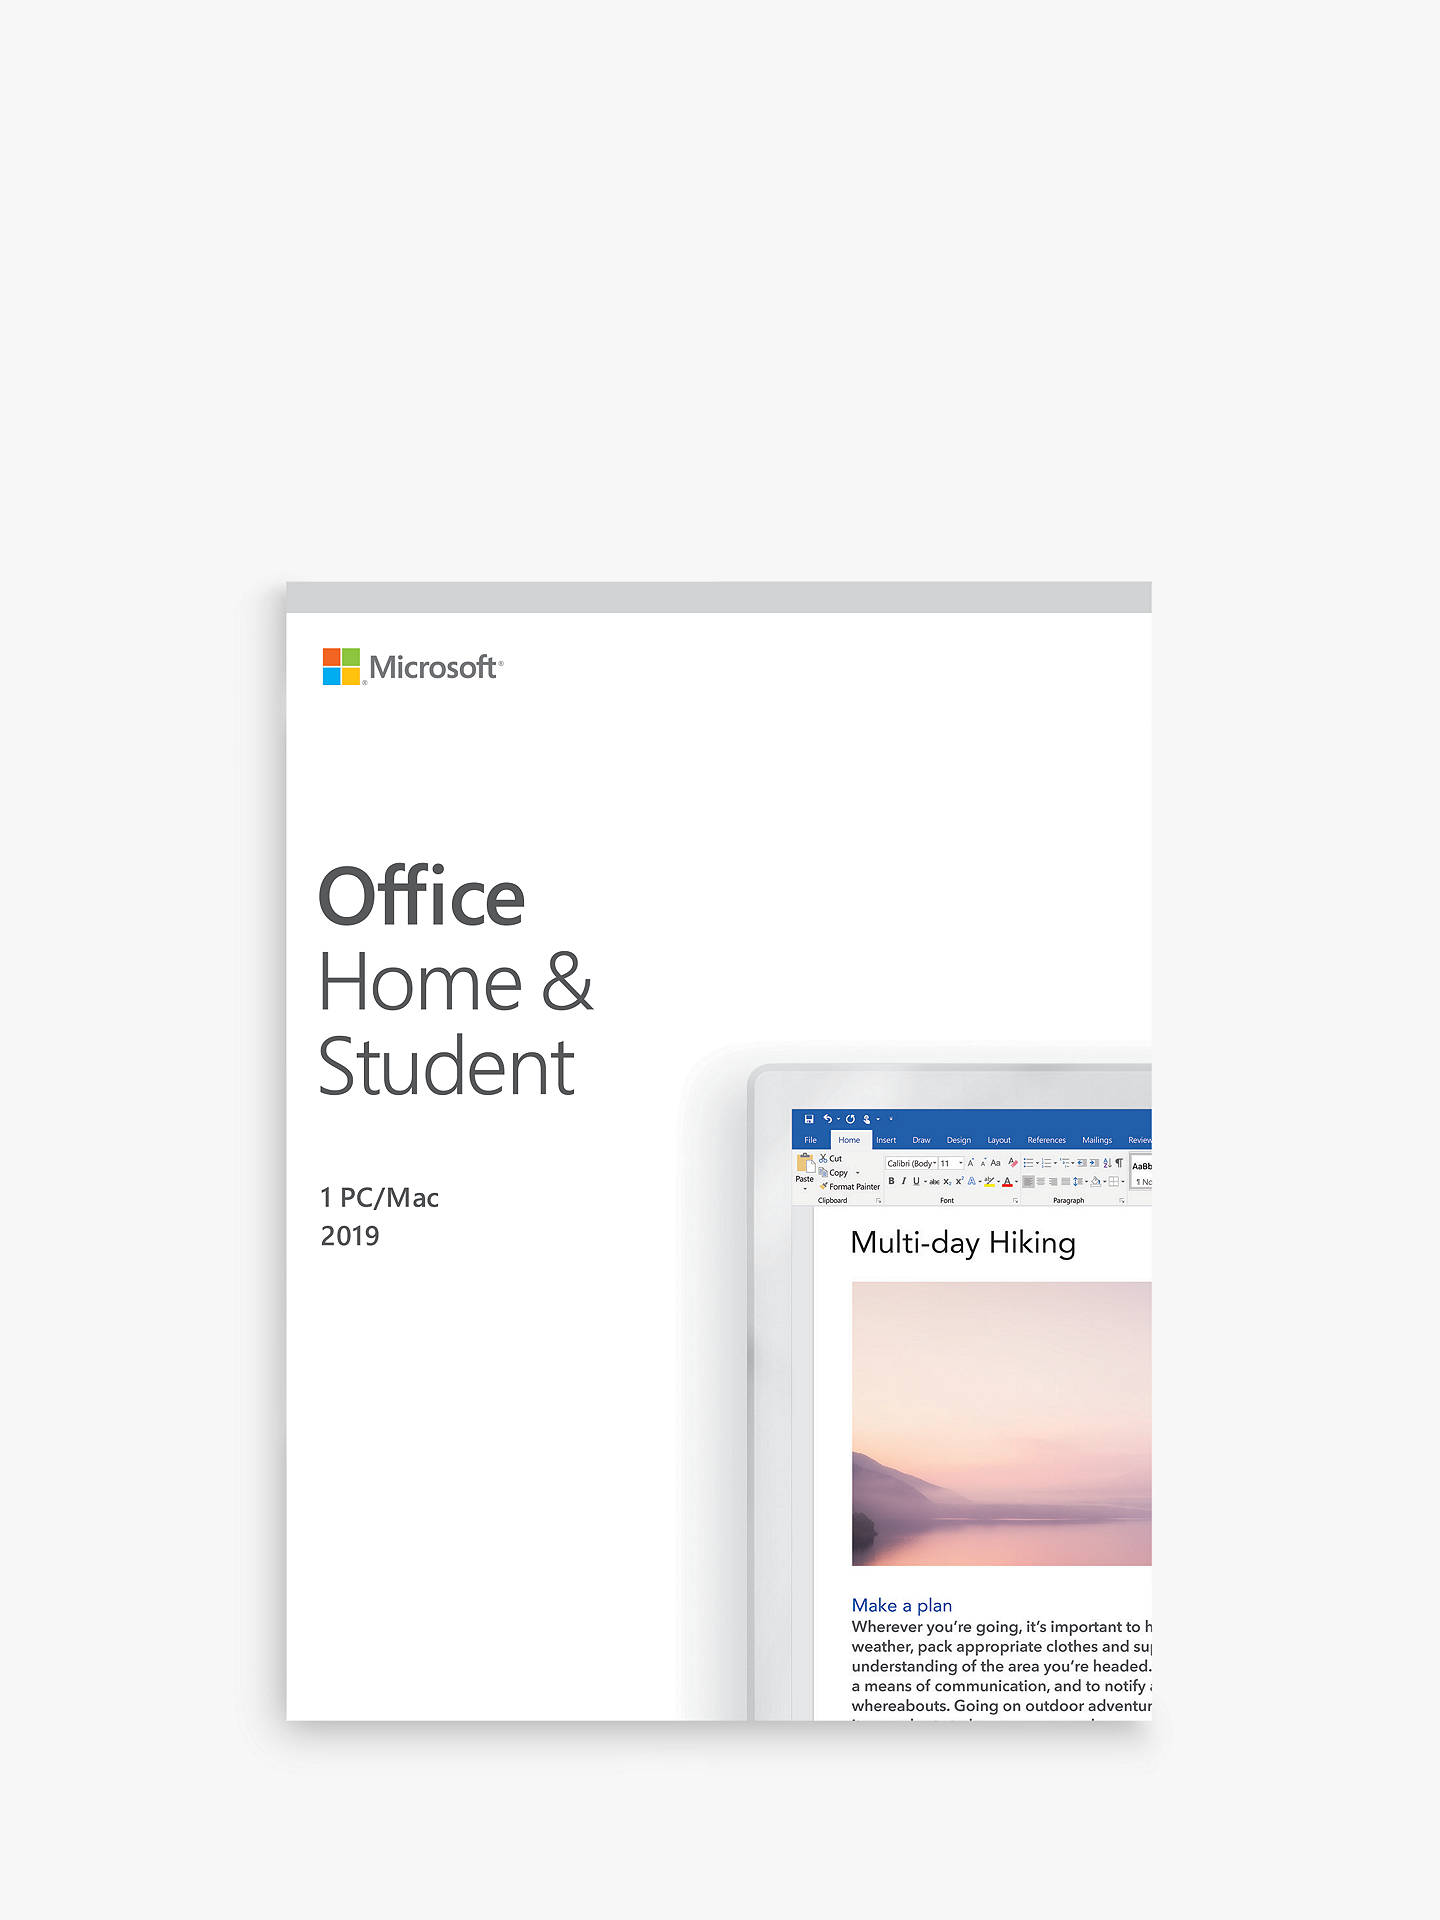 Microsoft Office Home and Student 2019, 1 PC, One-Off Payment, for Windows  10 and macOS